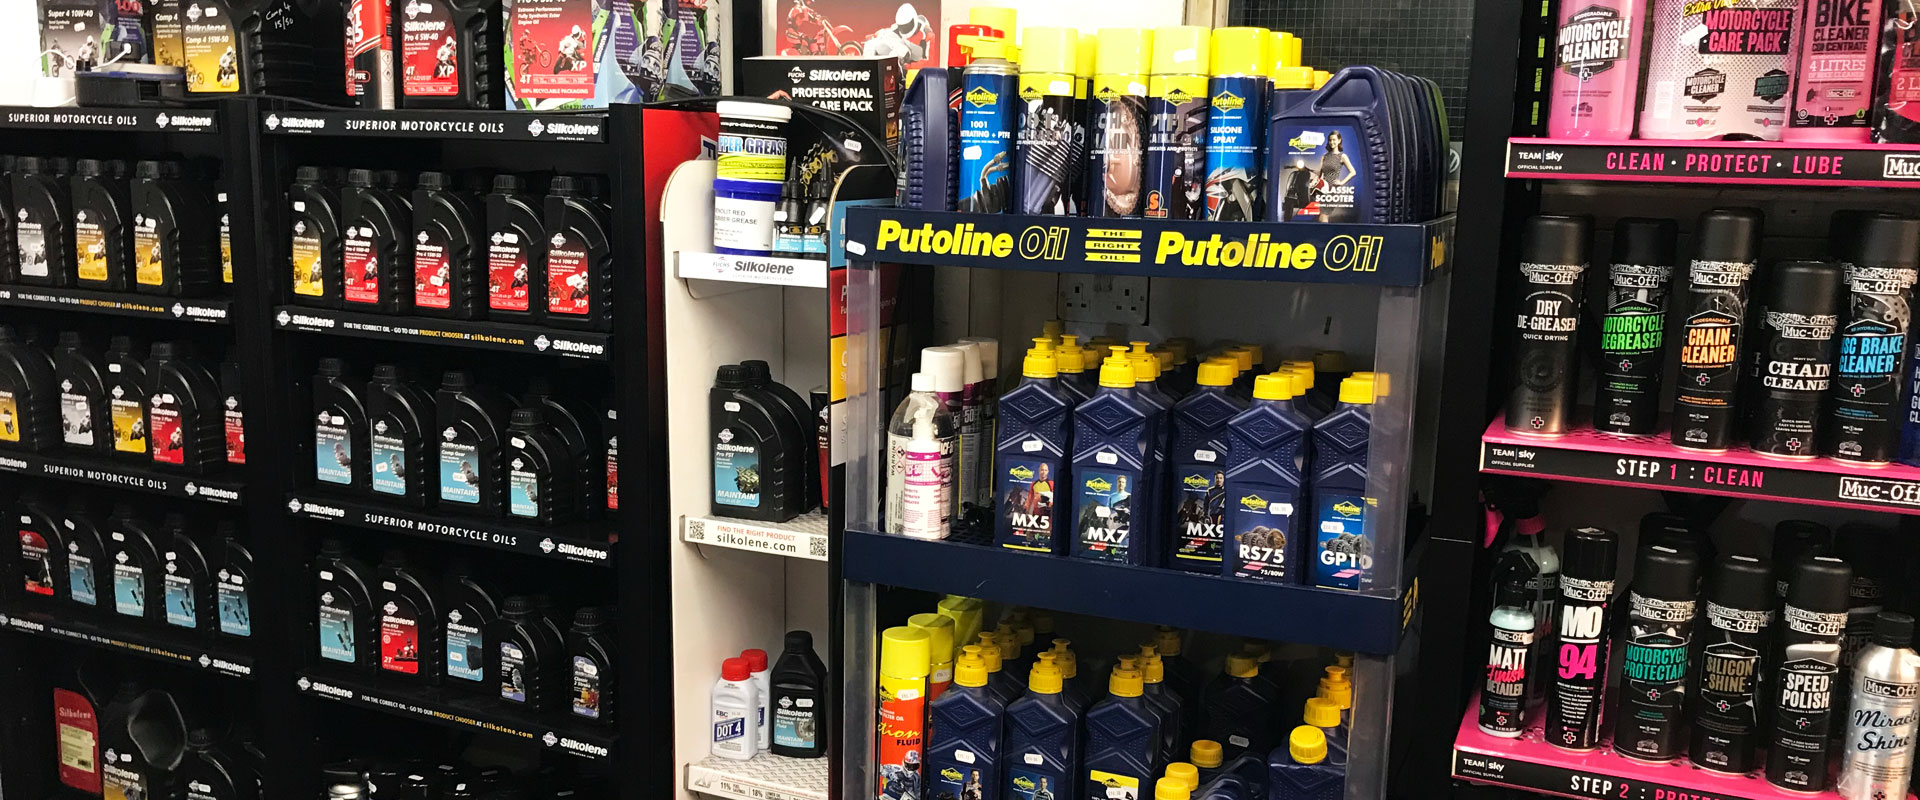 We stock a wide range of motorcycle accessories, including consumables like oil and cleaning products